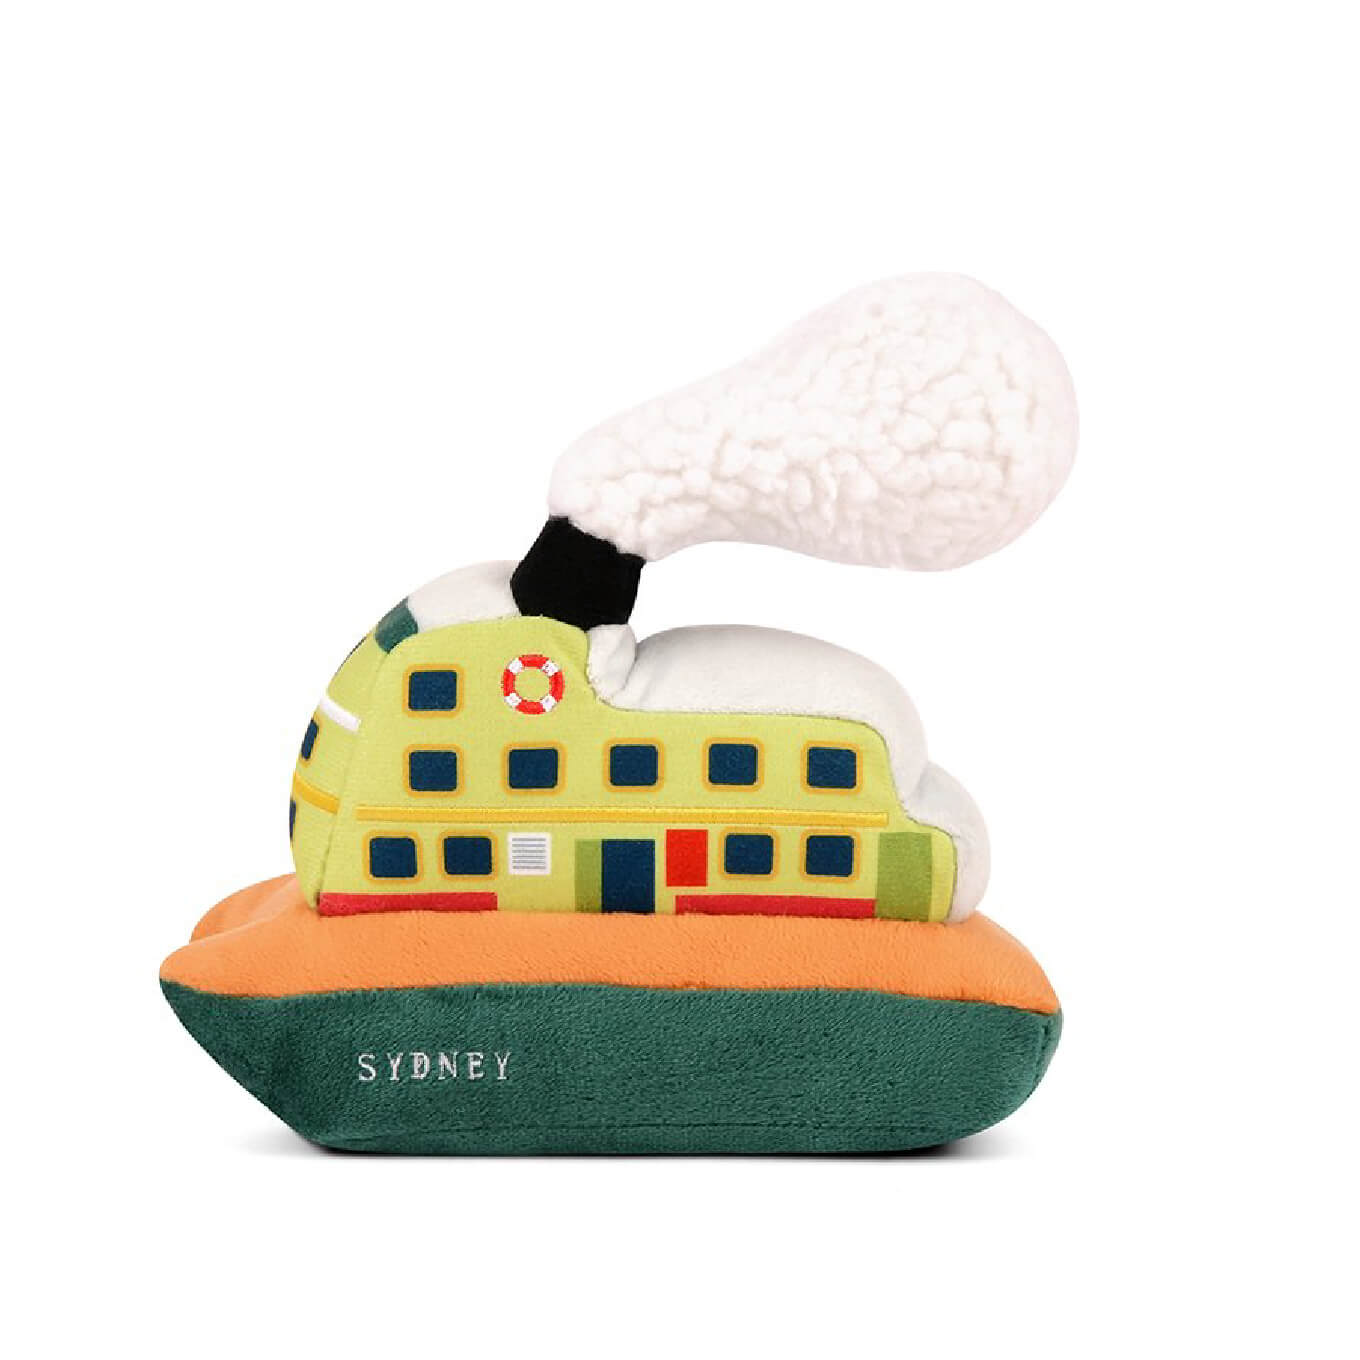 PLAY Canine Commute Sydney Ferry Plush Toy - Vanillapup Online Pet Store